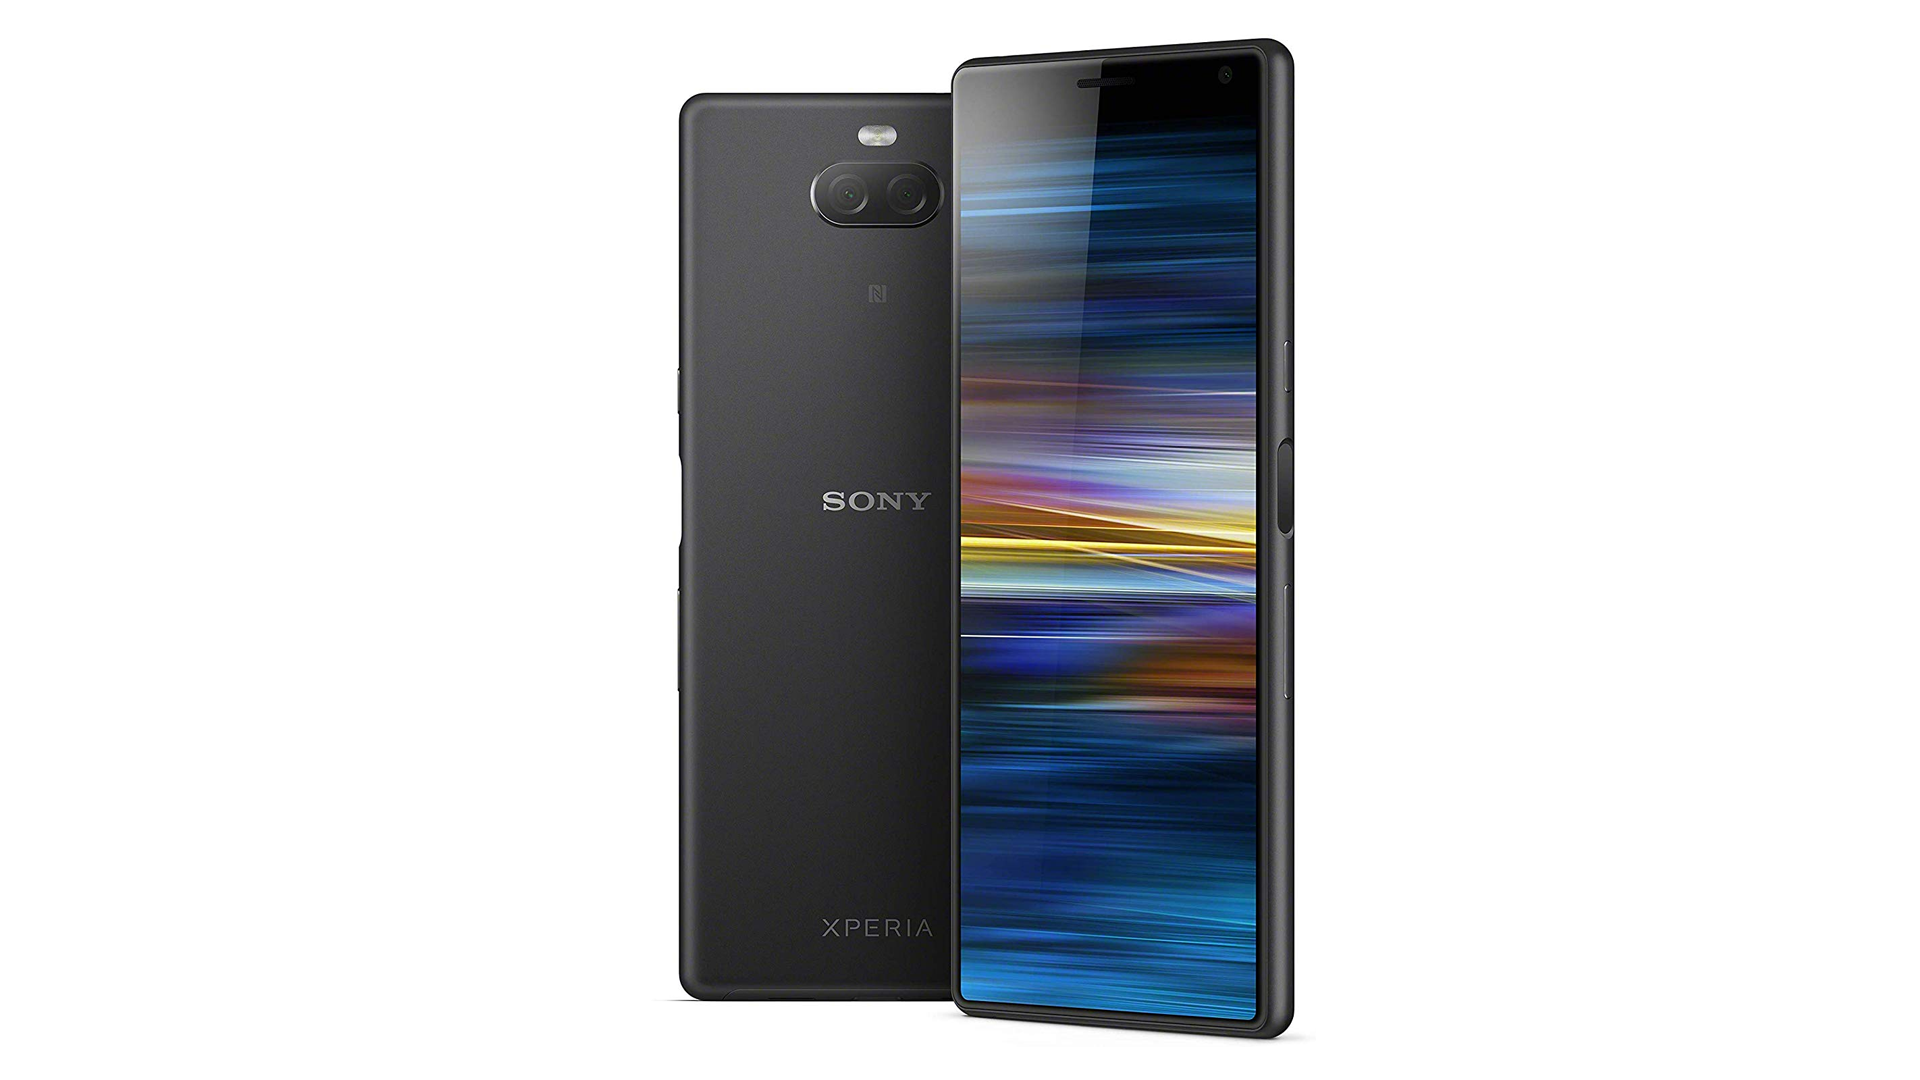 A photo of the Sony Xperia 10